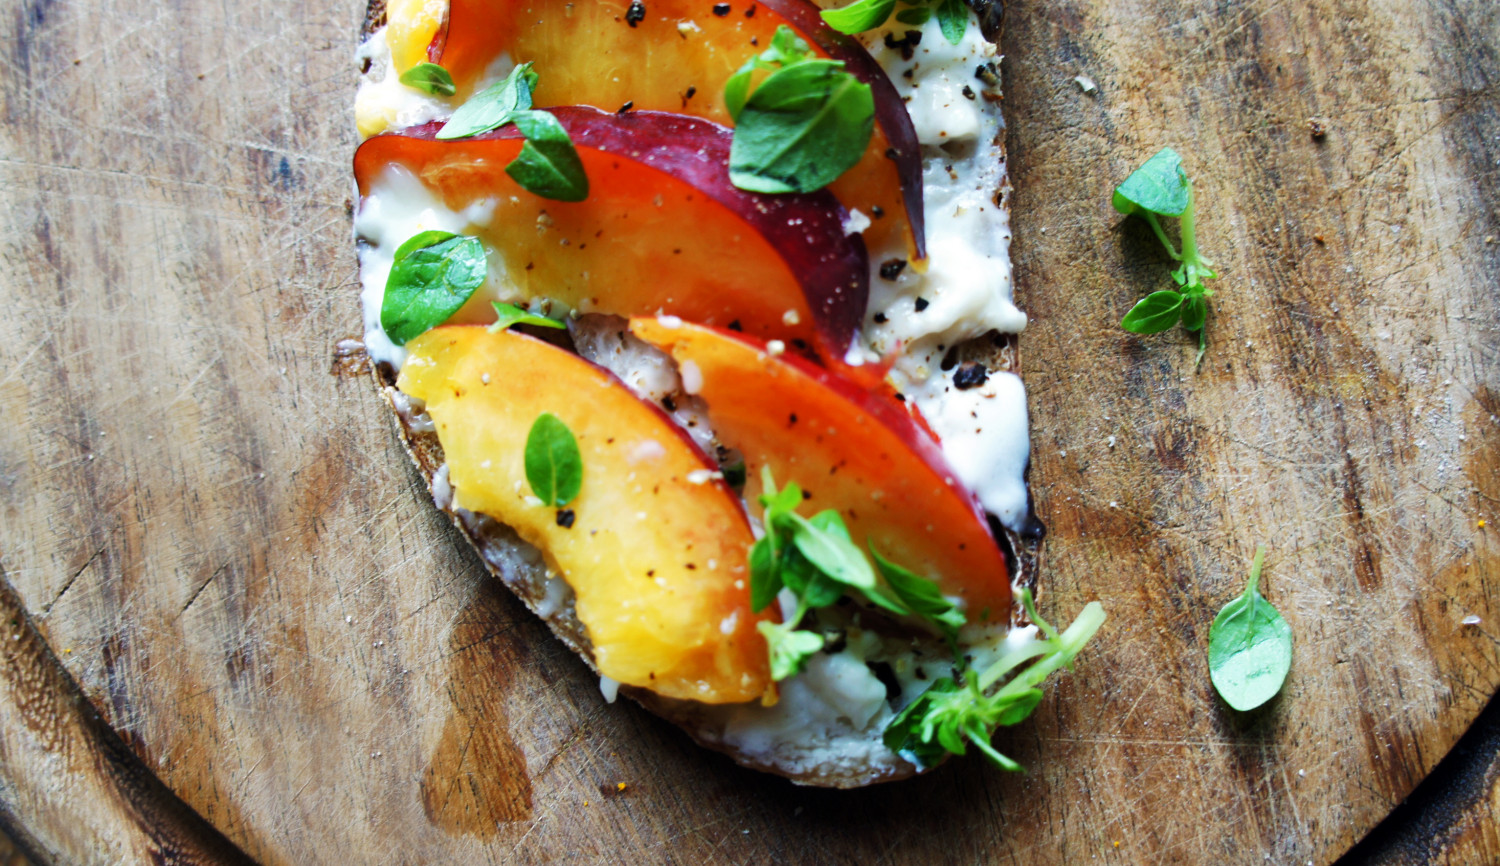 Nectarine and Goats Cheese Tartine with Basil | Tess Ward